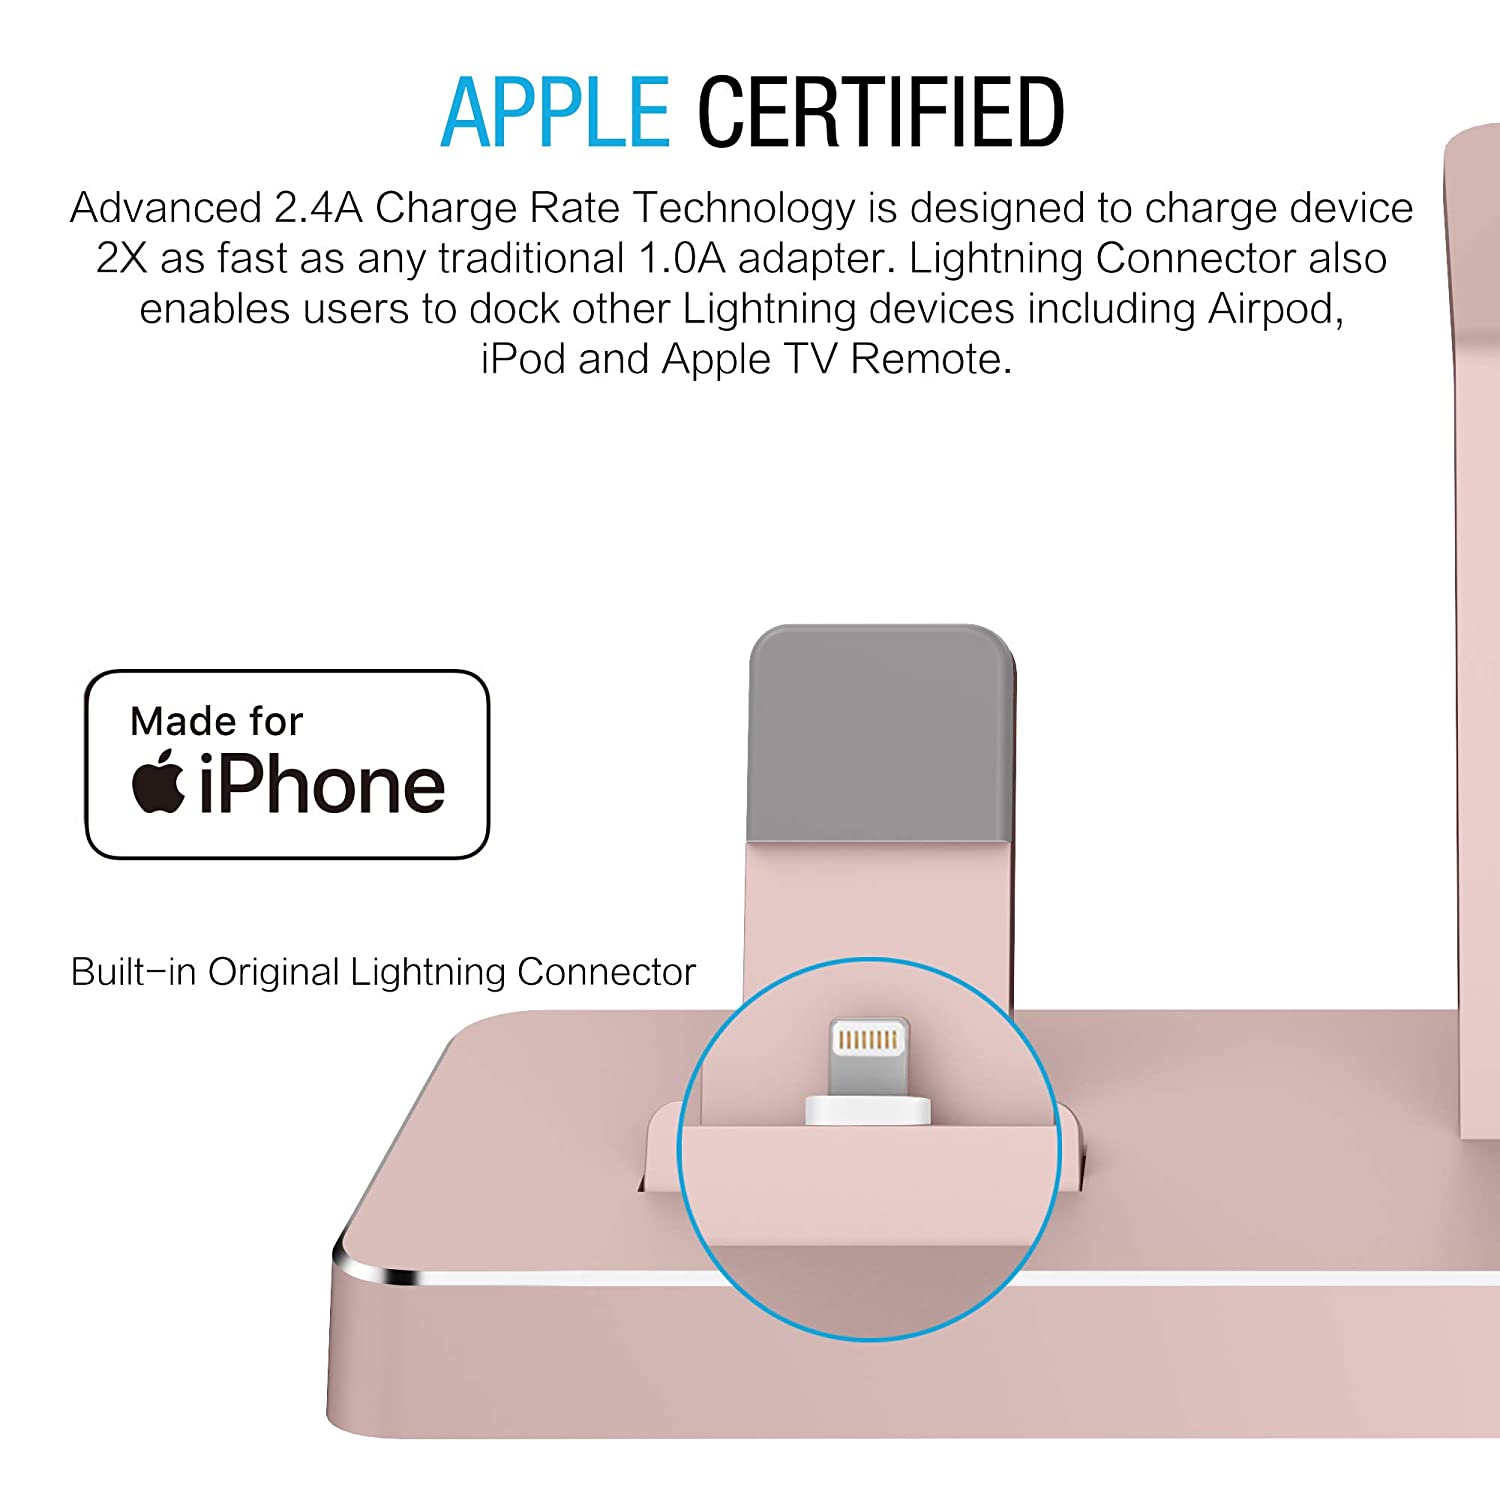 PRESS PLAY Charging Dock for Apple Watch & iPhone (Apple Certified), ONEDock Power Station w/Built-in Original Apple Lightning Connector for Docking, ...